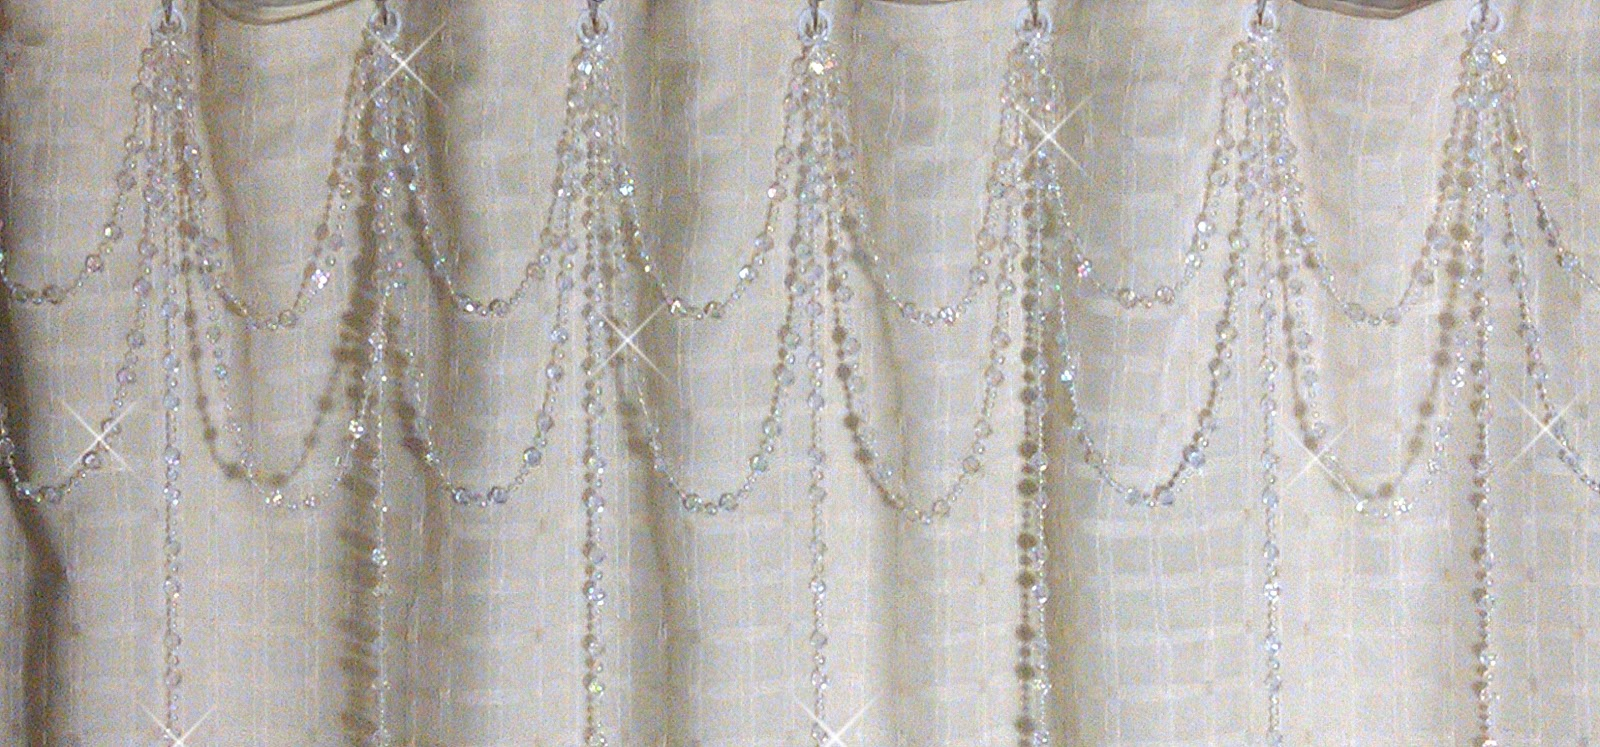 Shadez of Michelle Shower Curtain Bling Double Swag Iridescent Crystal with Vertical Stands